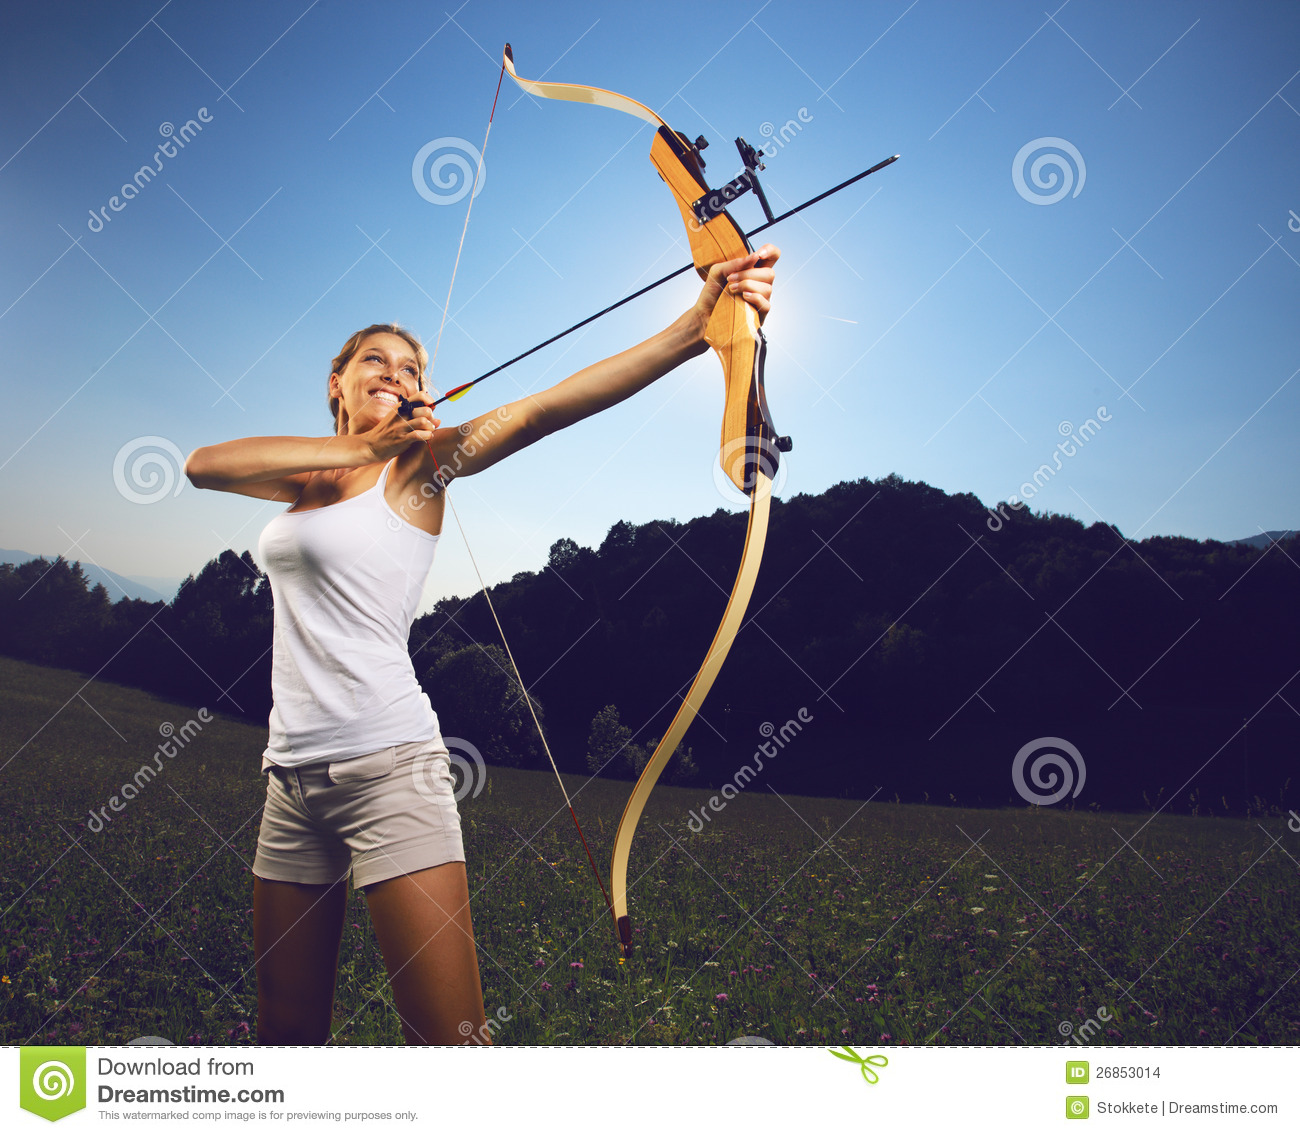 Archery Stock Images Image 26853014